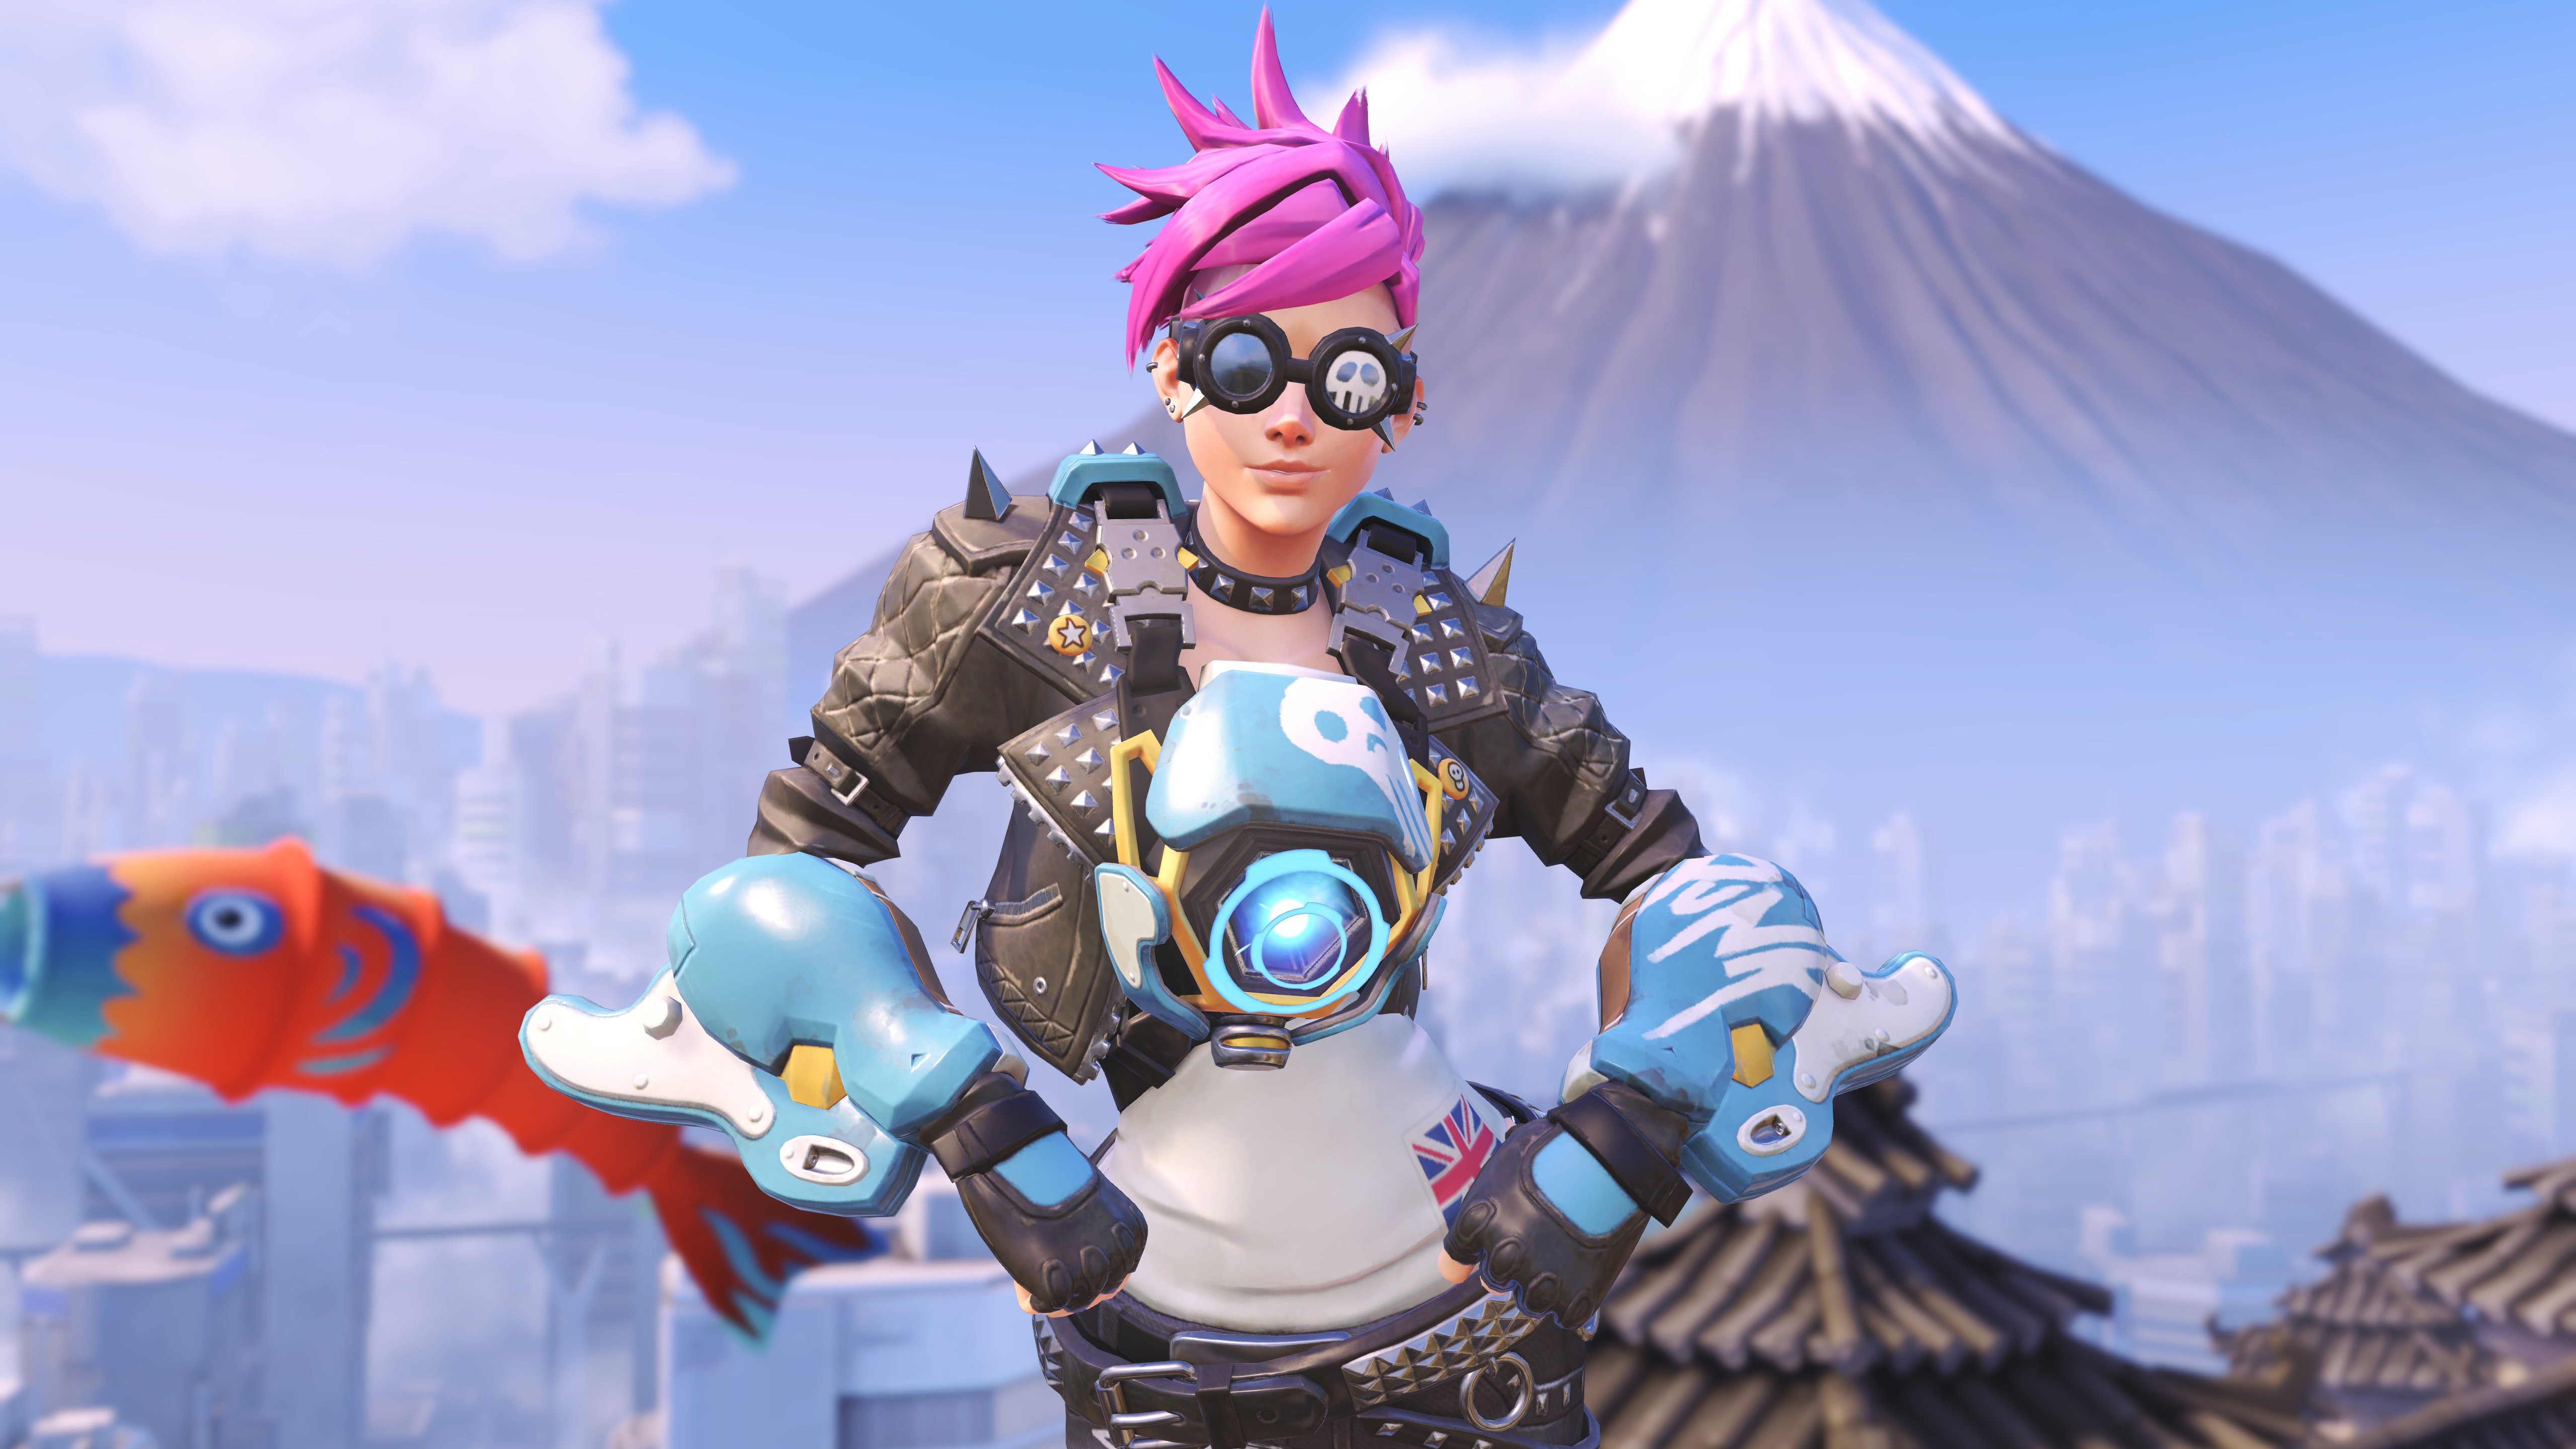 Tracer Overwatch 4K 5K Wallpapers HD Wallpapers 5120x2880